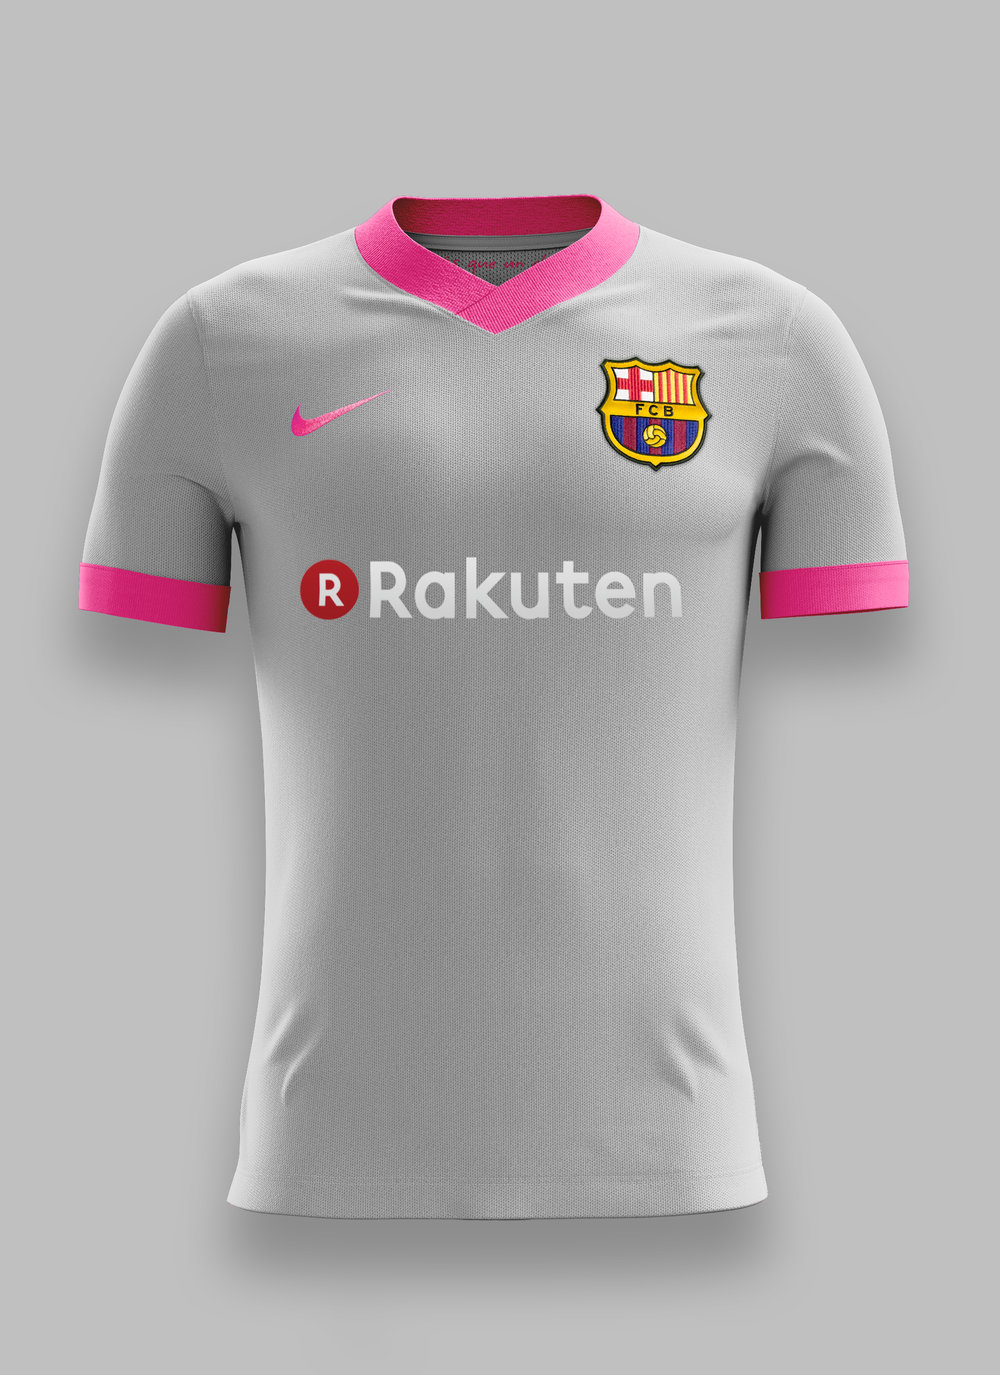 57b5fcd17e1 This season s FC Barcelona third kit colorway uses wolf grey and hyper  pink. The pink gives the kit an explosive look while the grey demonstrates  ...